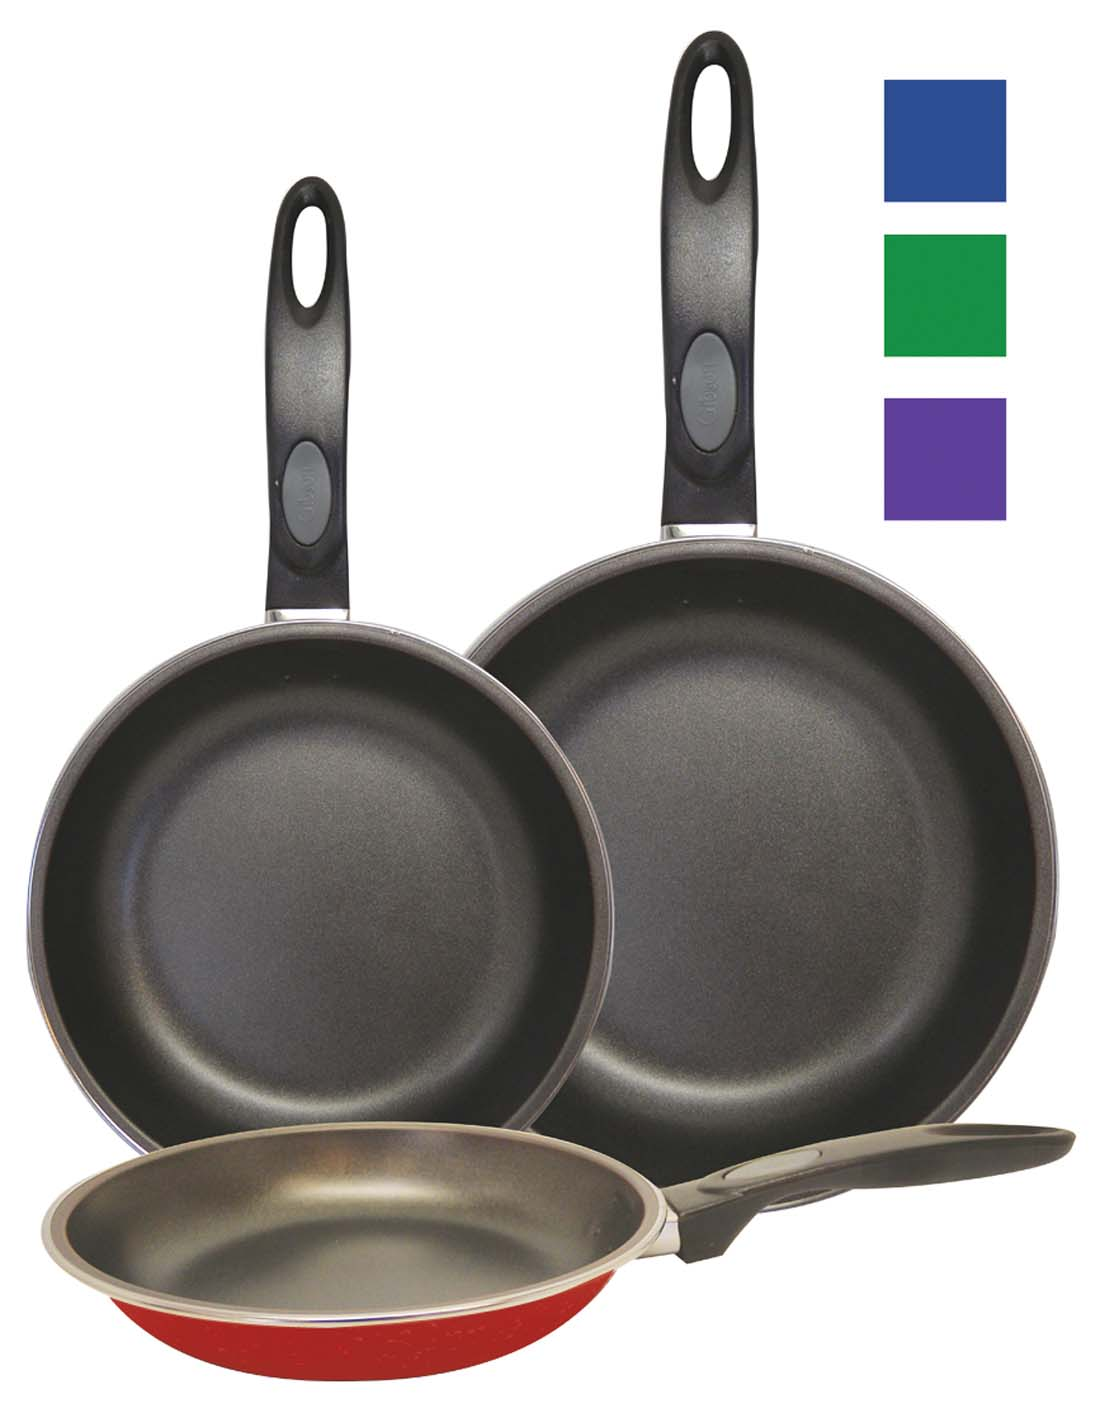 View GIBSON FRY PAN SET 3 PIECE 7/9/11 INCH PURPLE GREEN BLUE RED